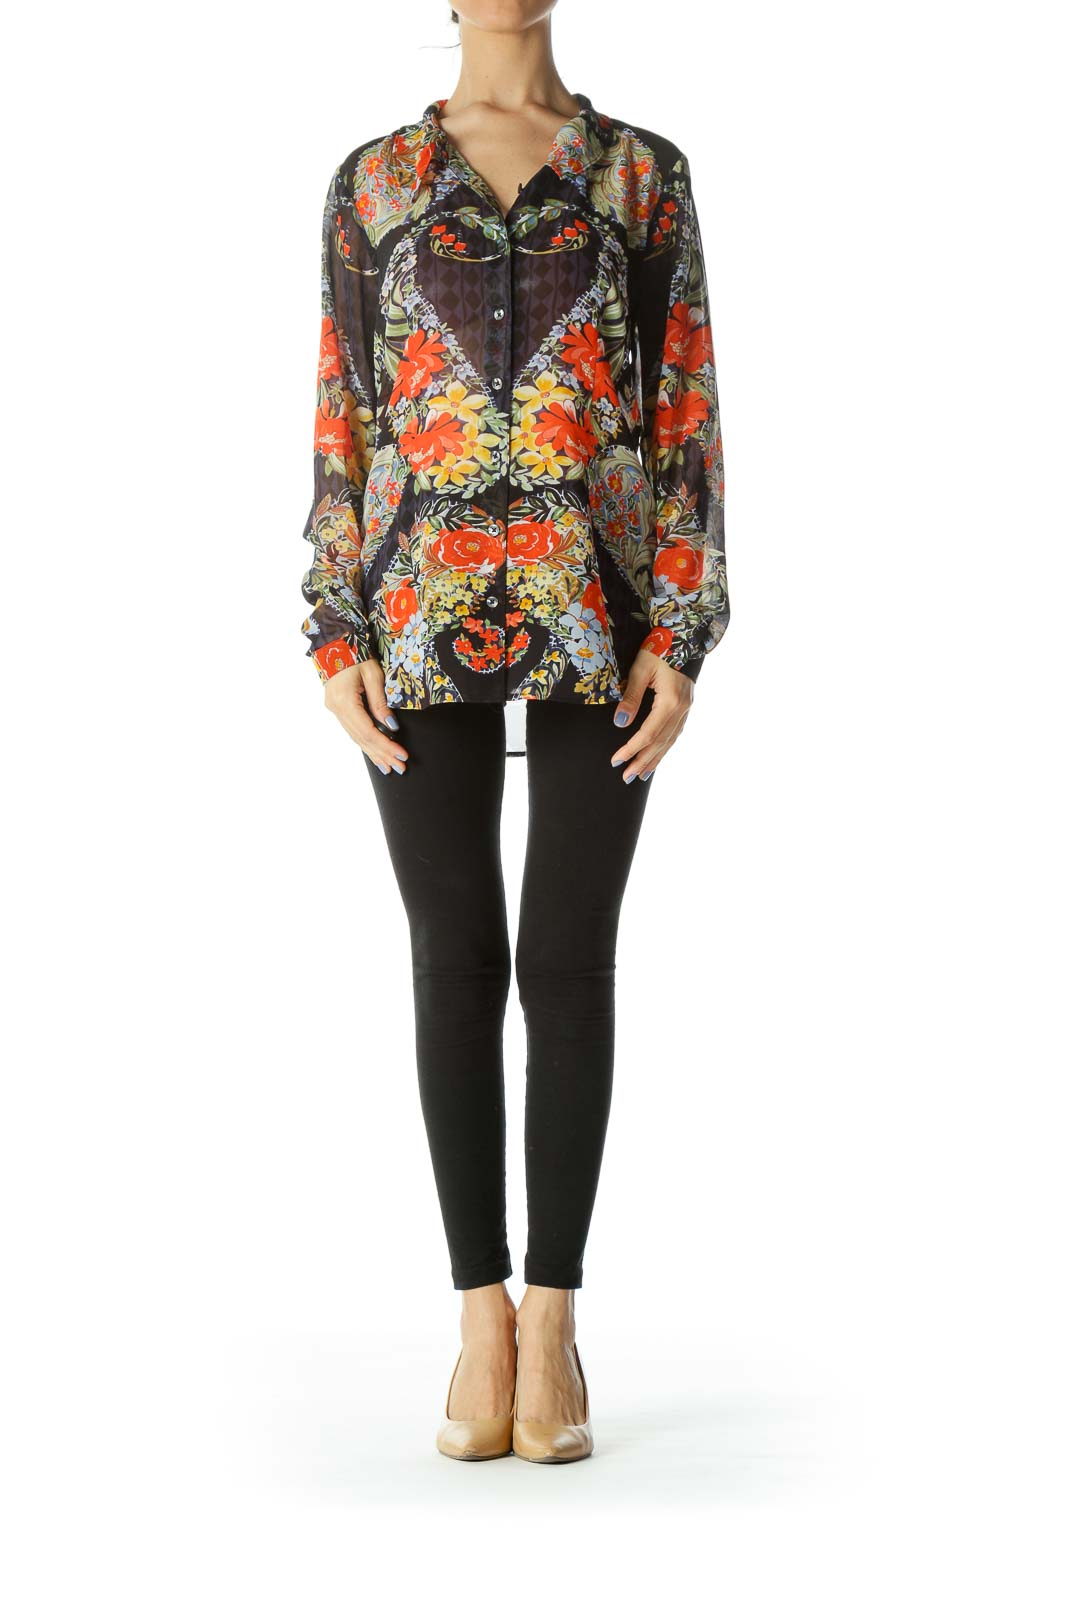 Multicolored See-Through Floral-Print Long-Sleeve Blouse